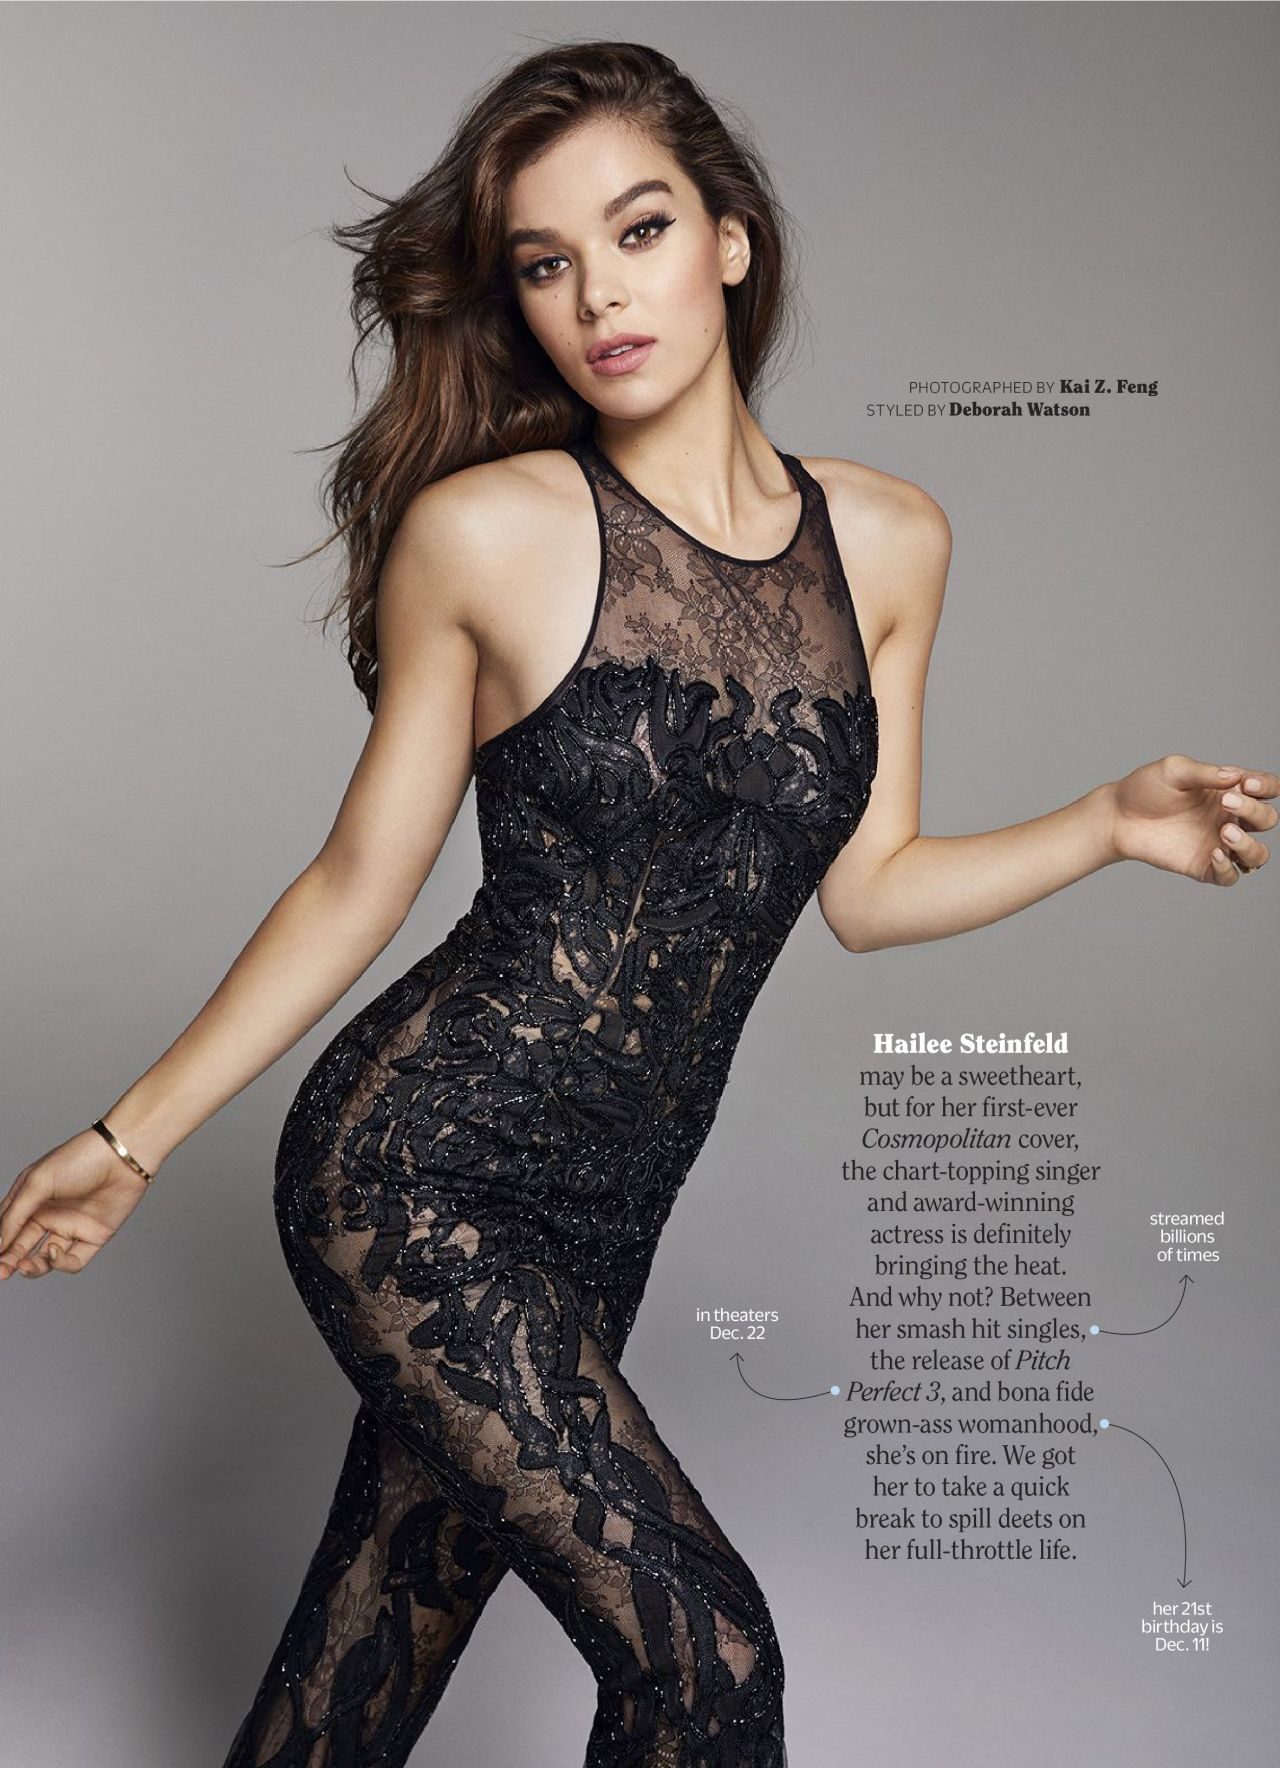 Hailee steinfeld in cosmopolitan magazine december 2019 naked (48 images)